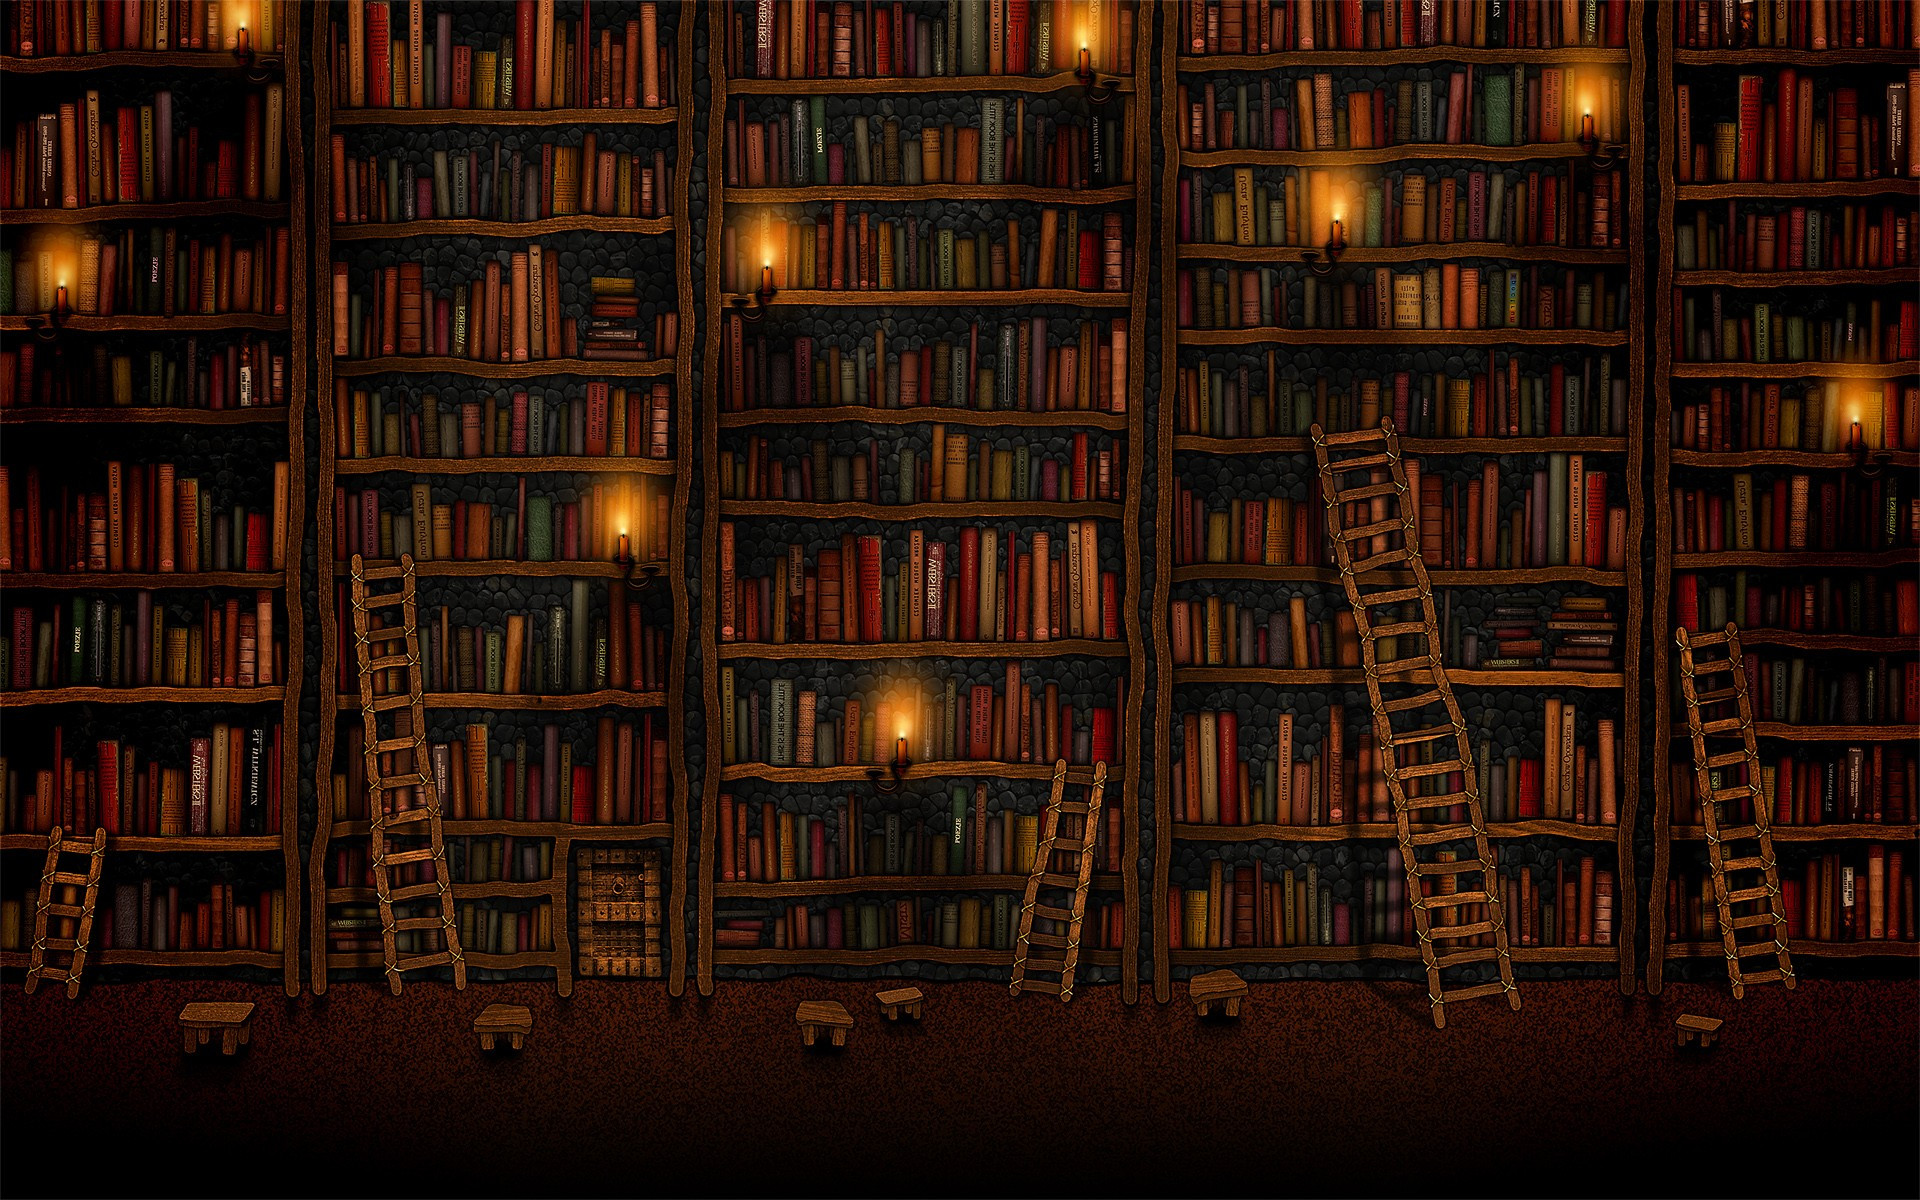 Tall bookshelves wallpaper   120261 1920x1200